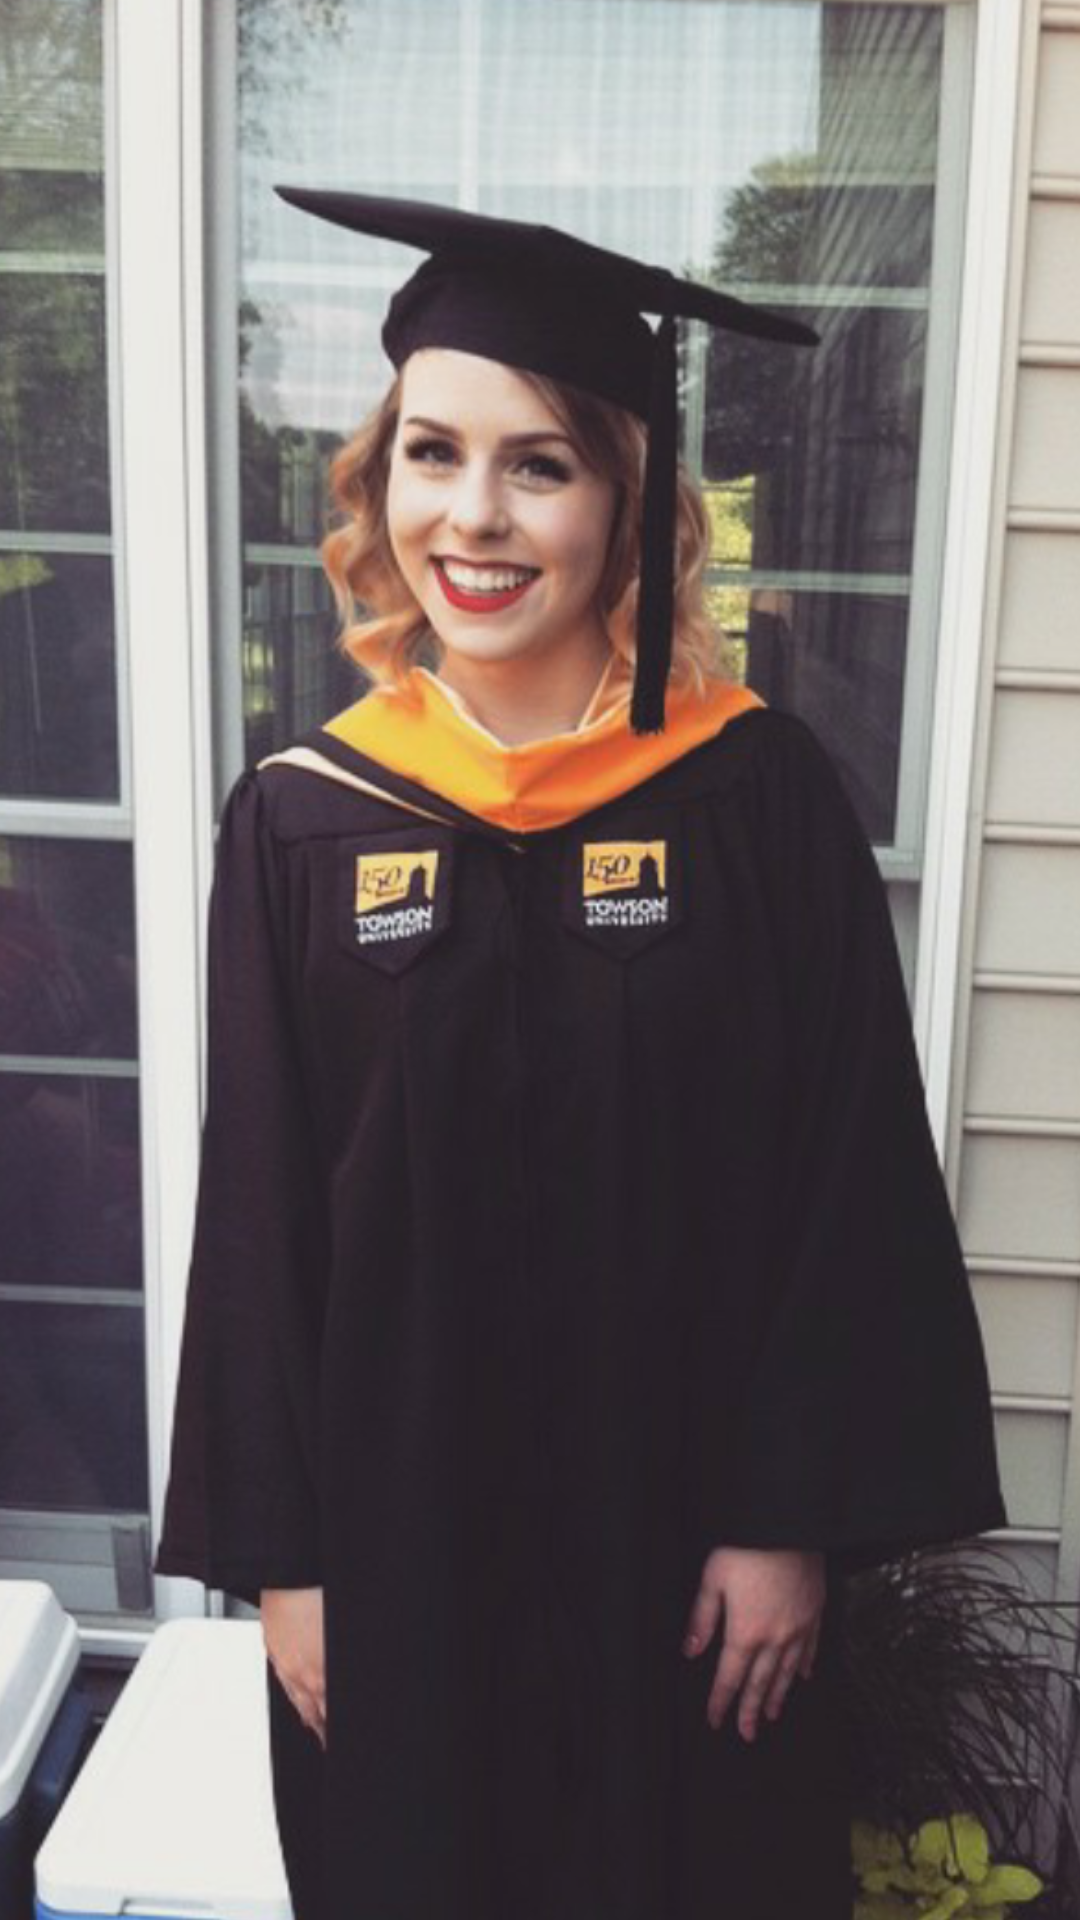 Fine Gpa On Resume After Graduation Pictures Inspiration - Entry ...